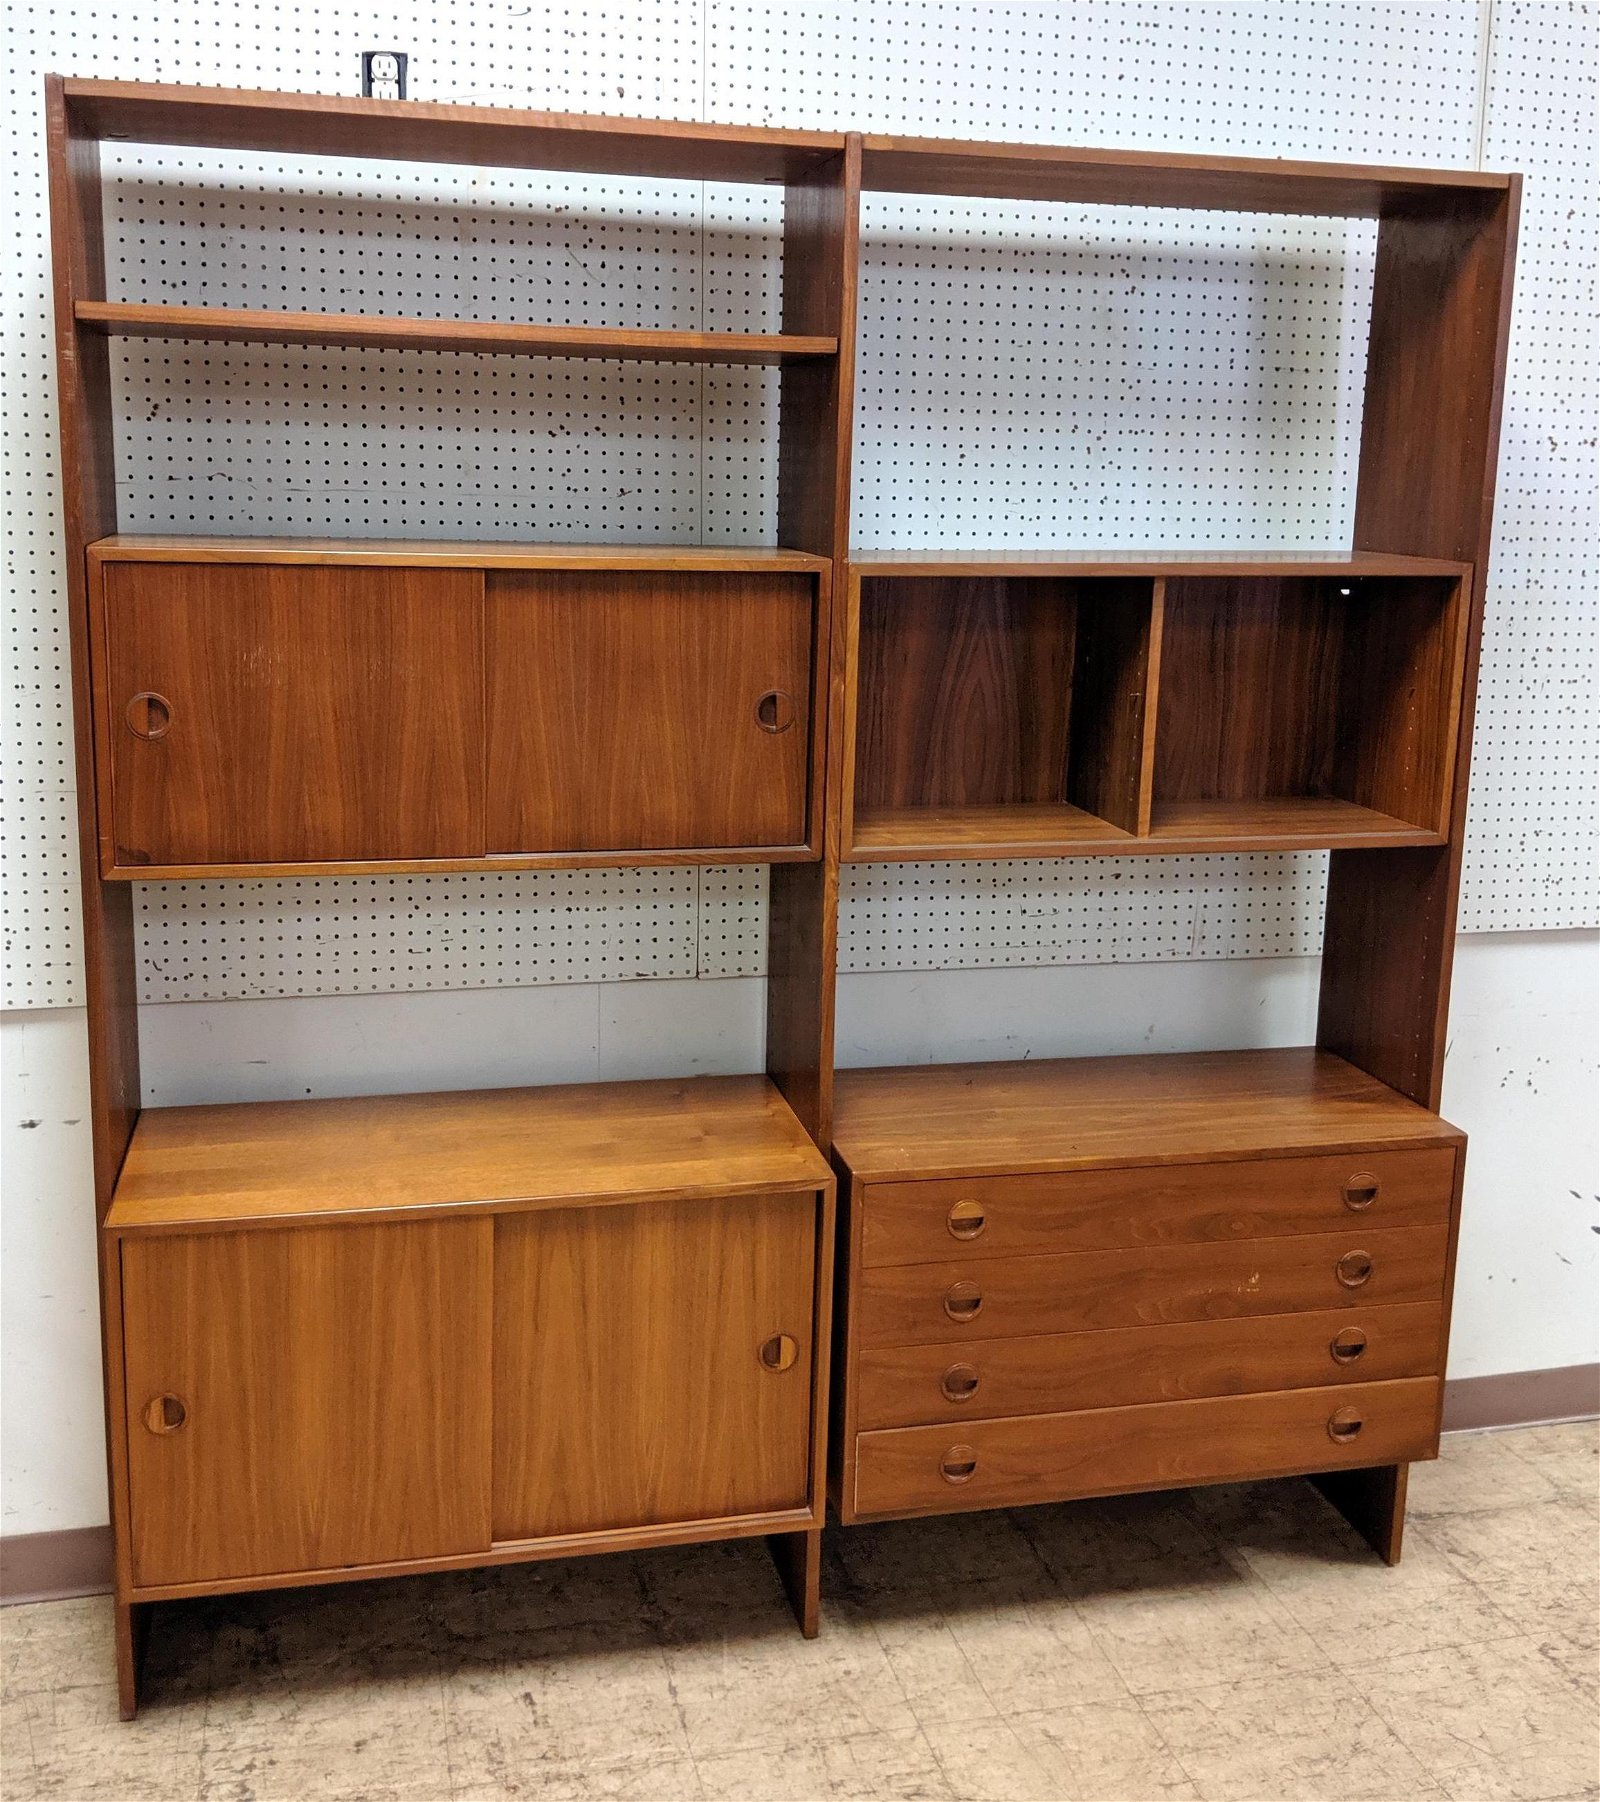 Danish Teak Wall Cabinet Unit. Room Divider Shelf